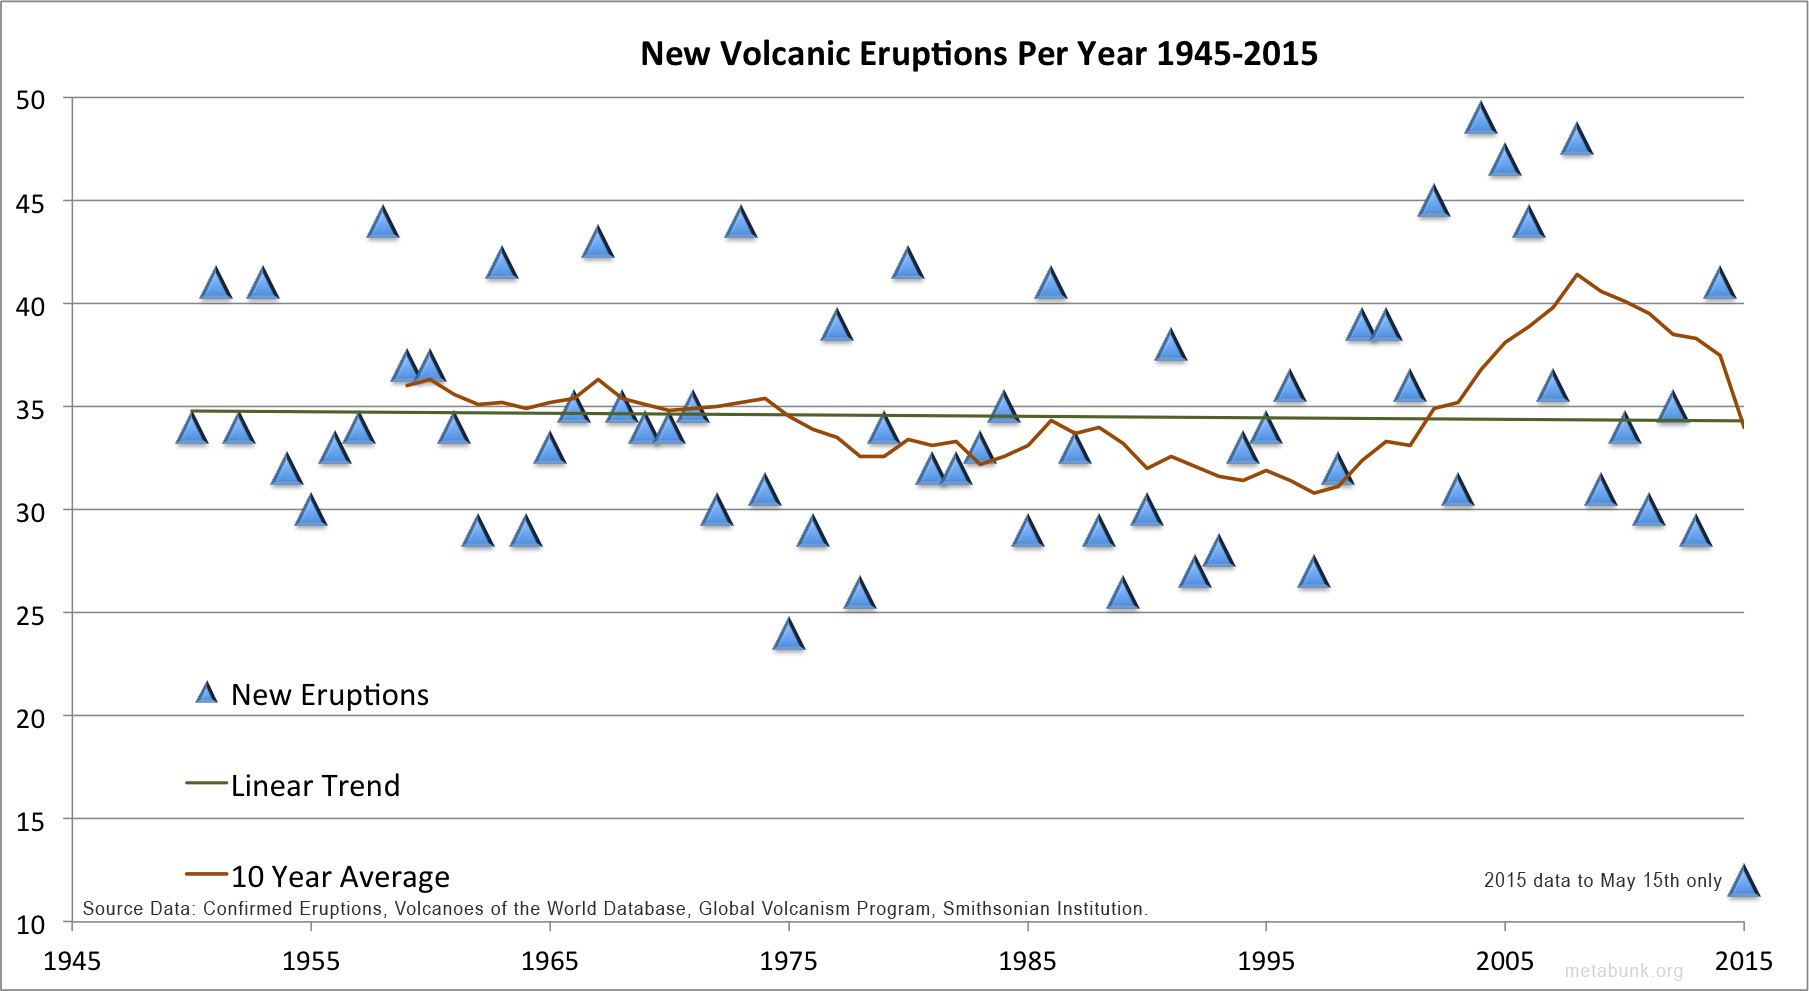 increase volcanic activity 2016, significant increase volcano eruption 2016, volcano eruption 2016, increase volcanic eruption 2016, increase volcanic eruptions 2016, volcanic eruptions skyrocket in 2016, enhanced volcanic activity 2016, increasing volcano eruptions 2016